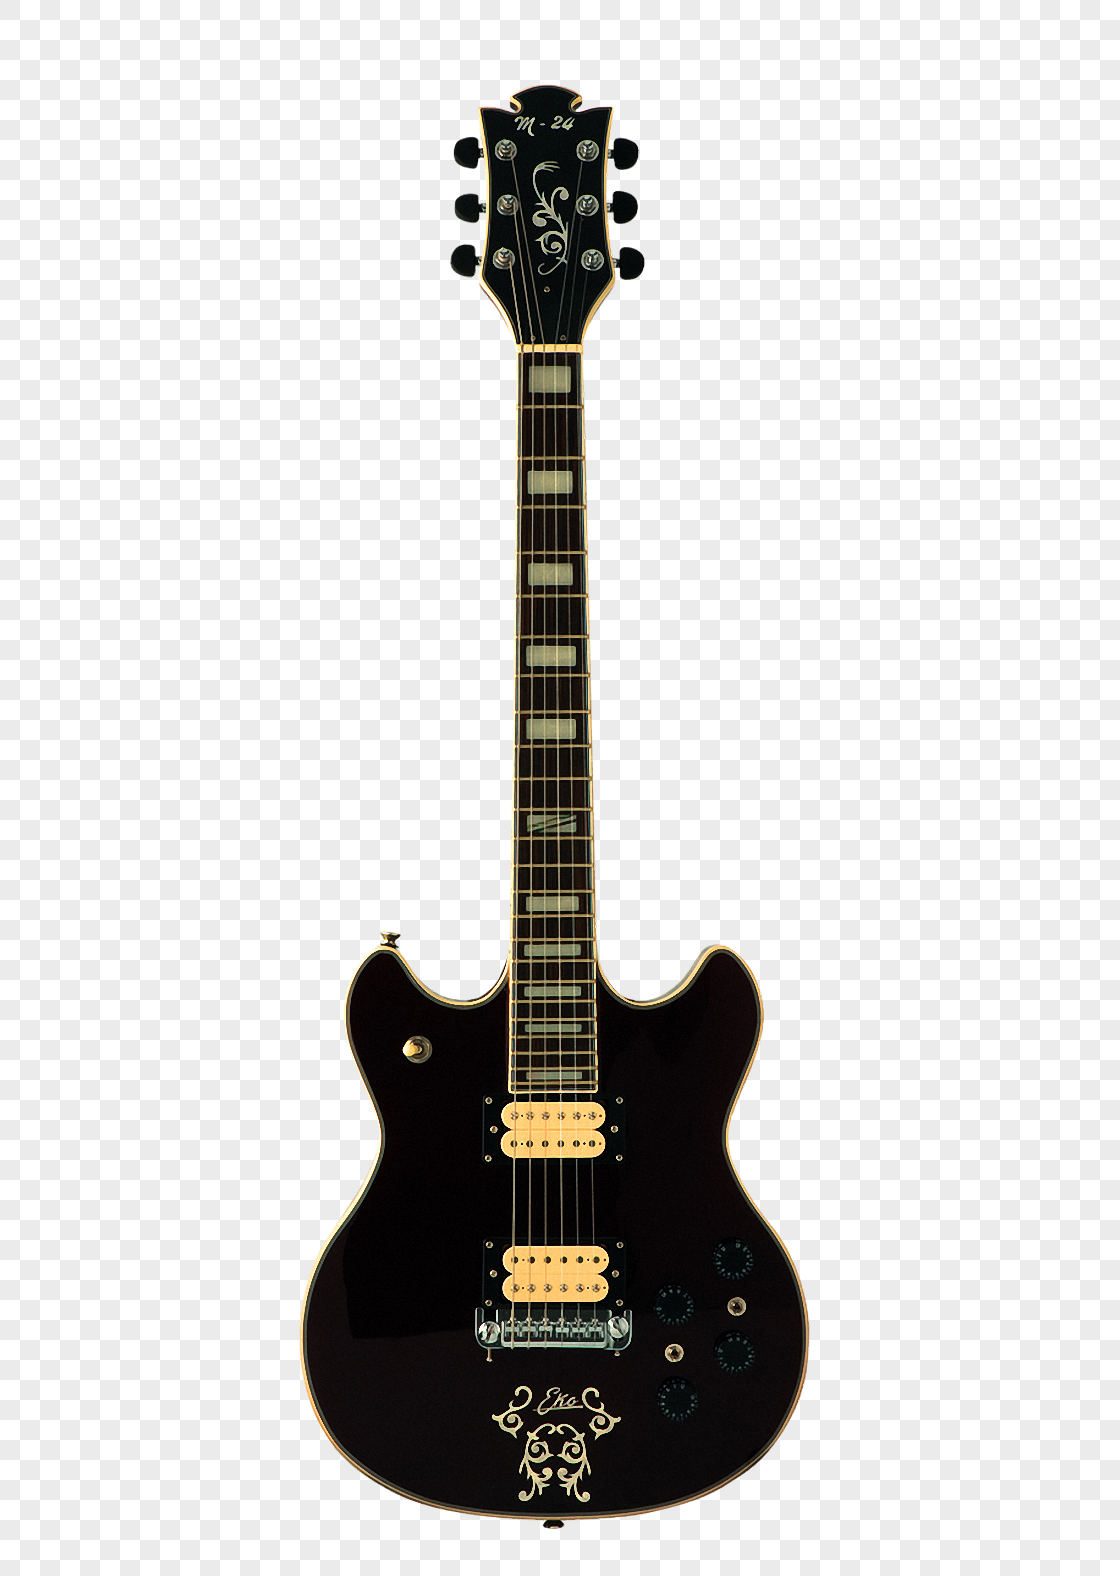 Black Electric Guitar Png Image Picture Free Download